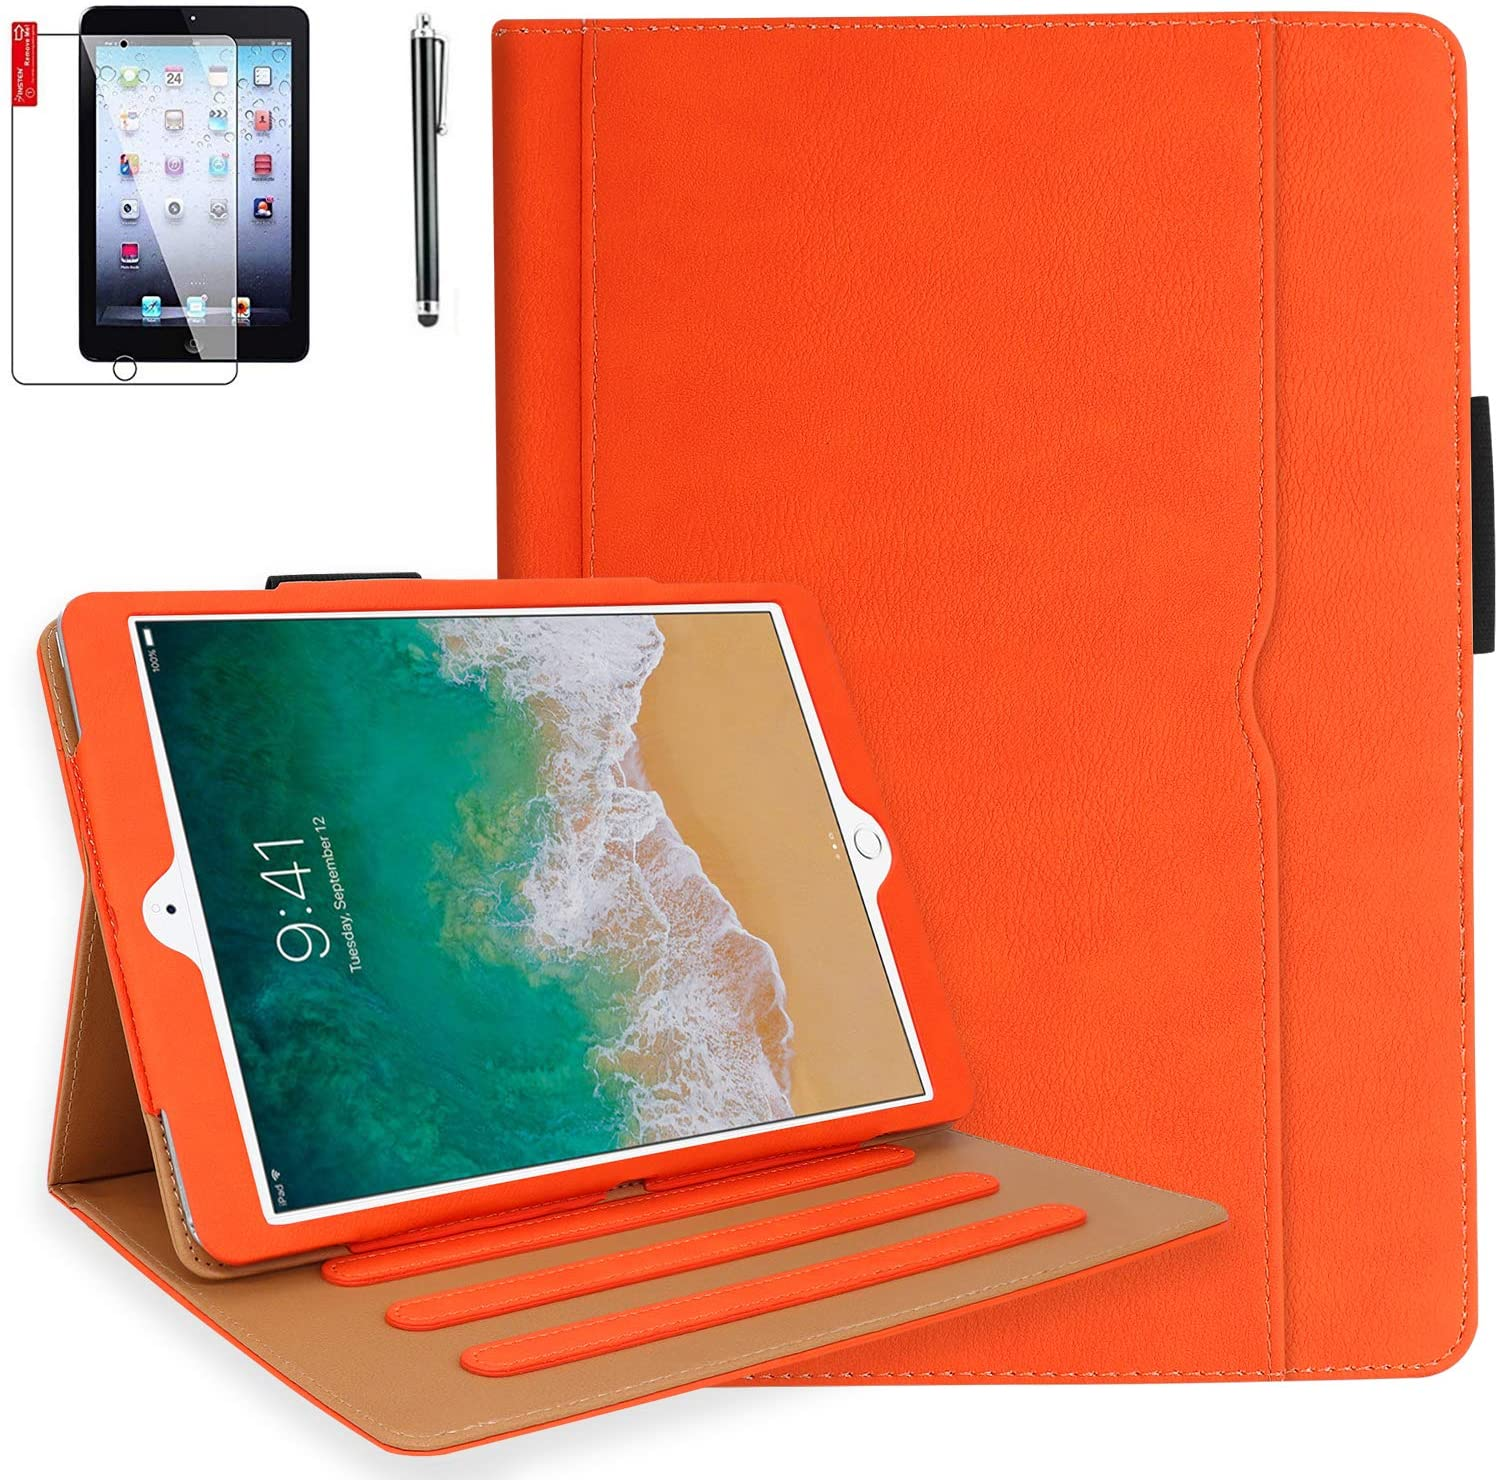 iPad Pro 10.5 Case, iPad Air 3 Case with Pencil Holder, Bonus Screen Protector and Stylus - Multi-Angle Stand, Hand Strap, Auto Sleep/Wake for iPad Air 3rd Generation, iPad Pro 10.5(Orange)